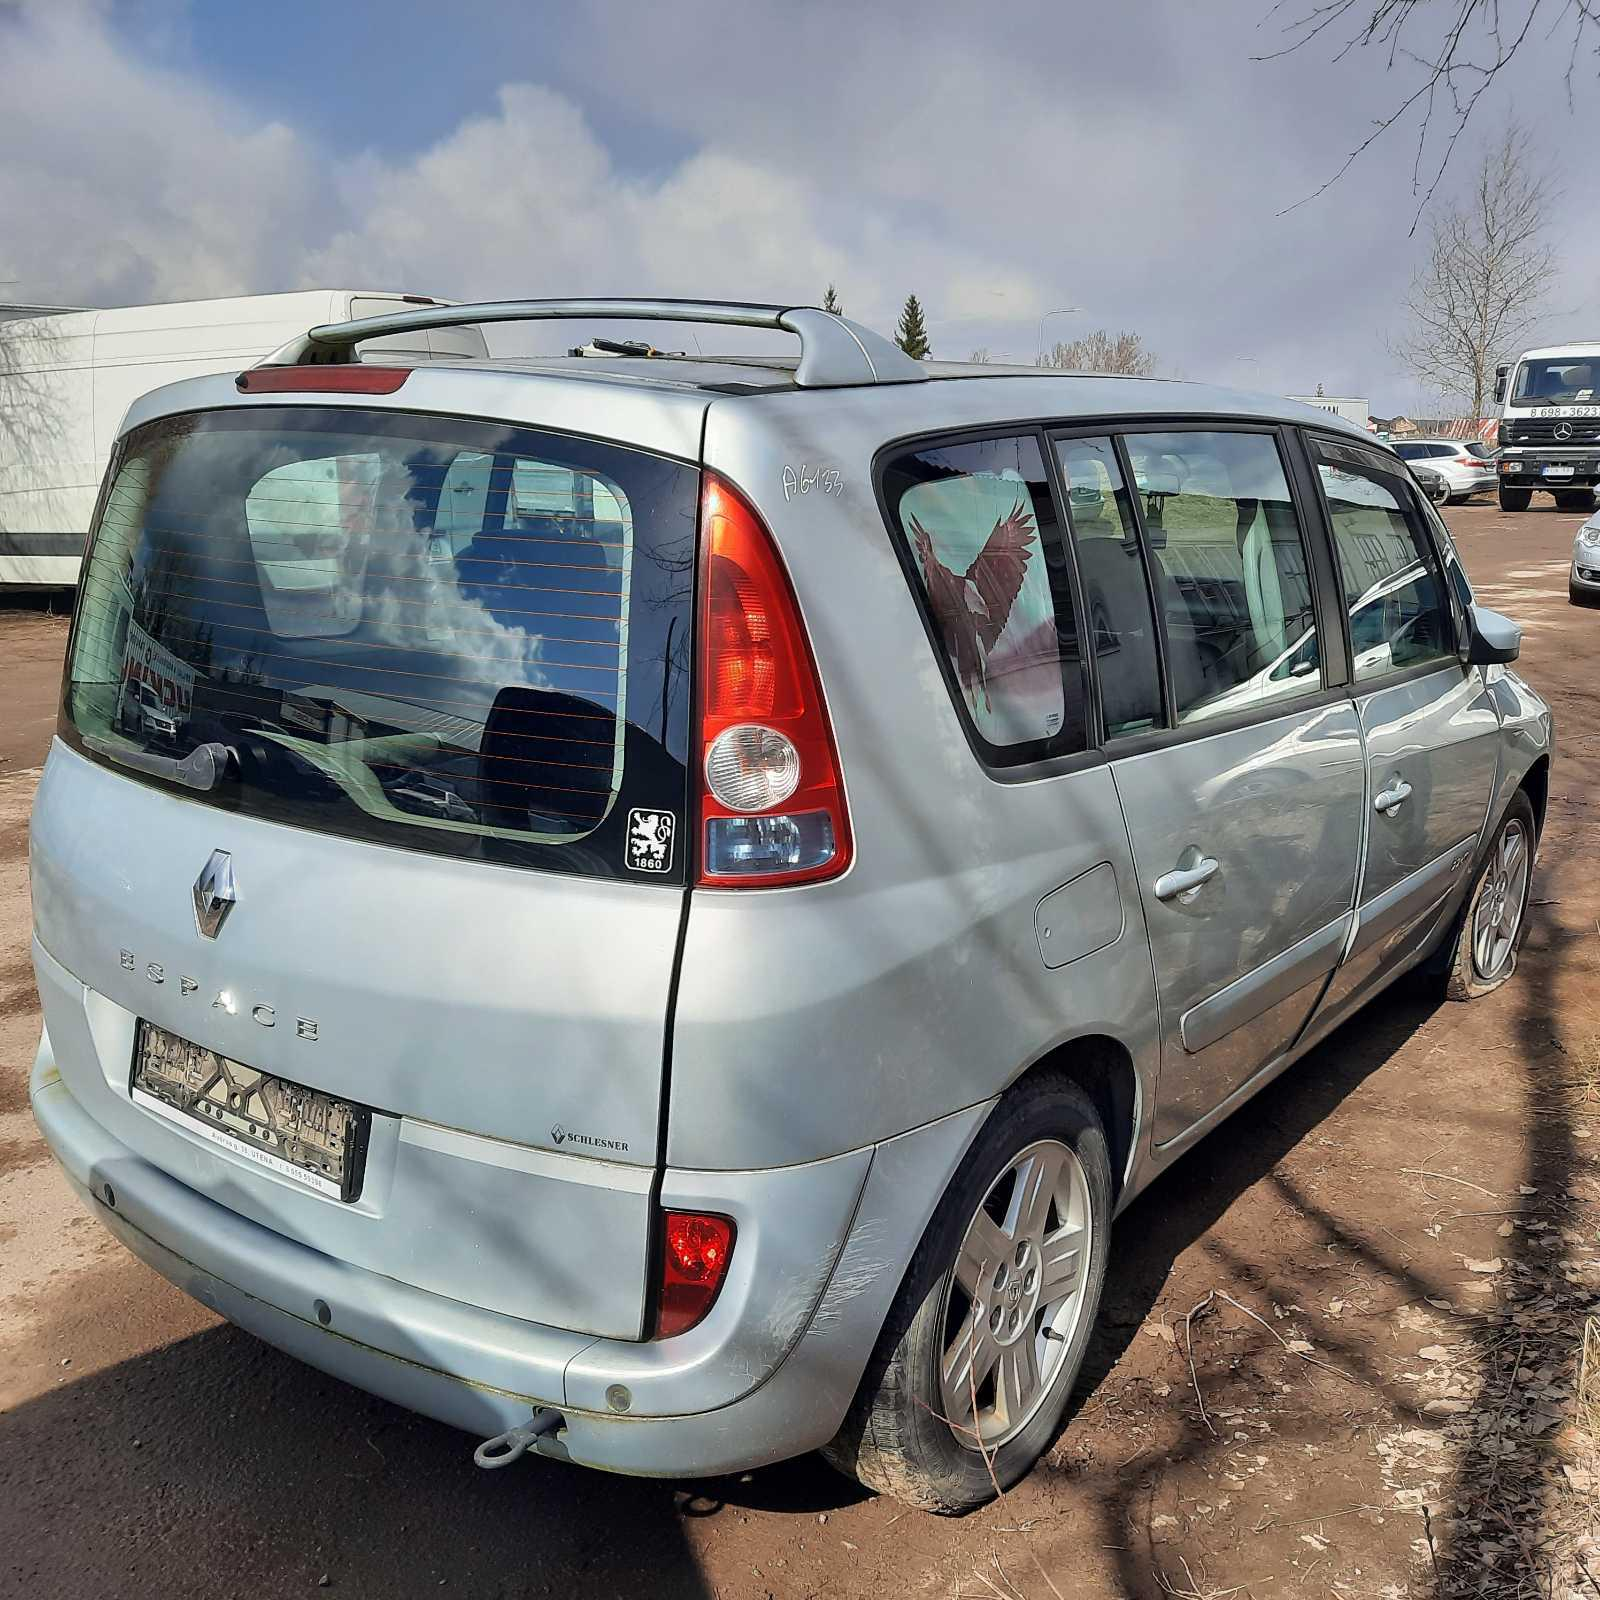 Used Car Parts Foto 8 Renault ESPACE 2004 2.2 Mechanical Minivan 4/5 d. Silver 2021-4-07 A6133